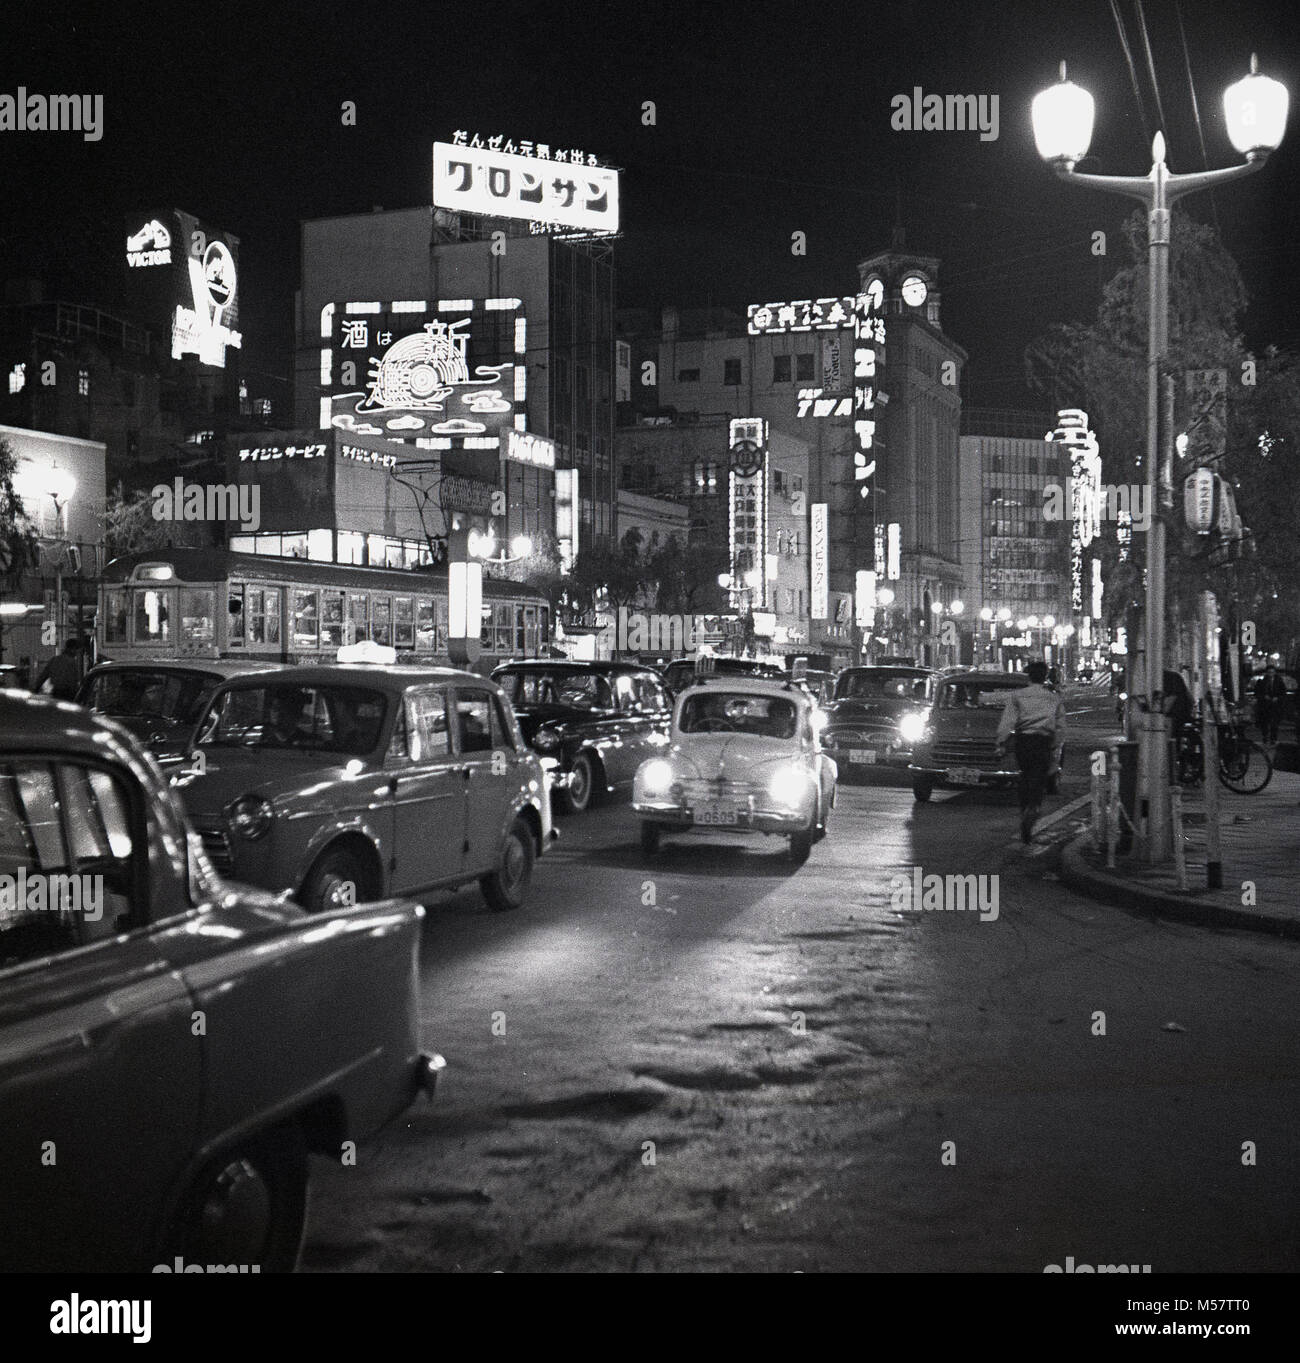 Tokyo, Japan, 1950s, historical picture showing the neon lighting of the city in the evening with the streets busy - Stock Image